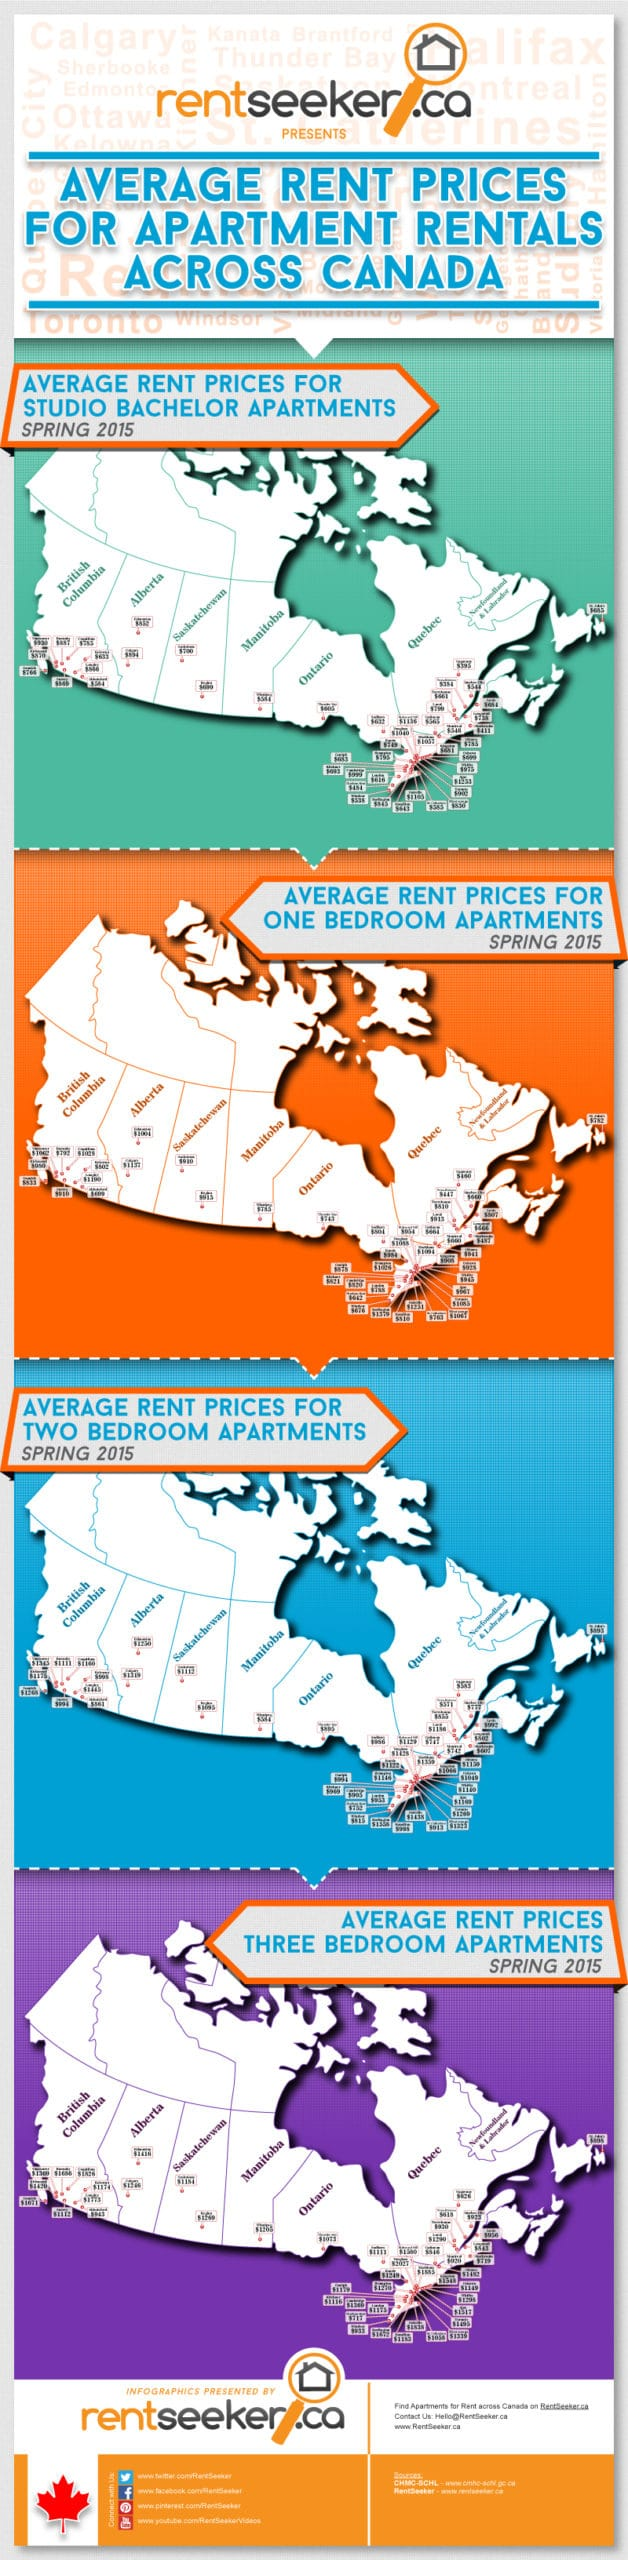 Cost of Renting an Apartment in Canada